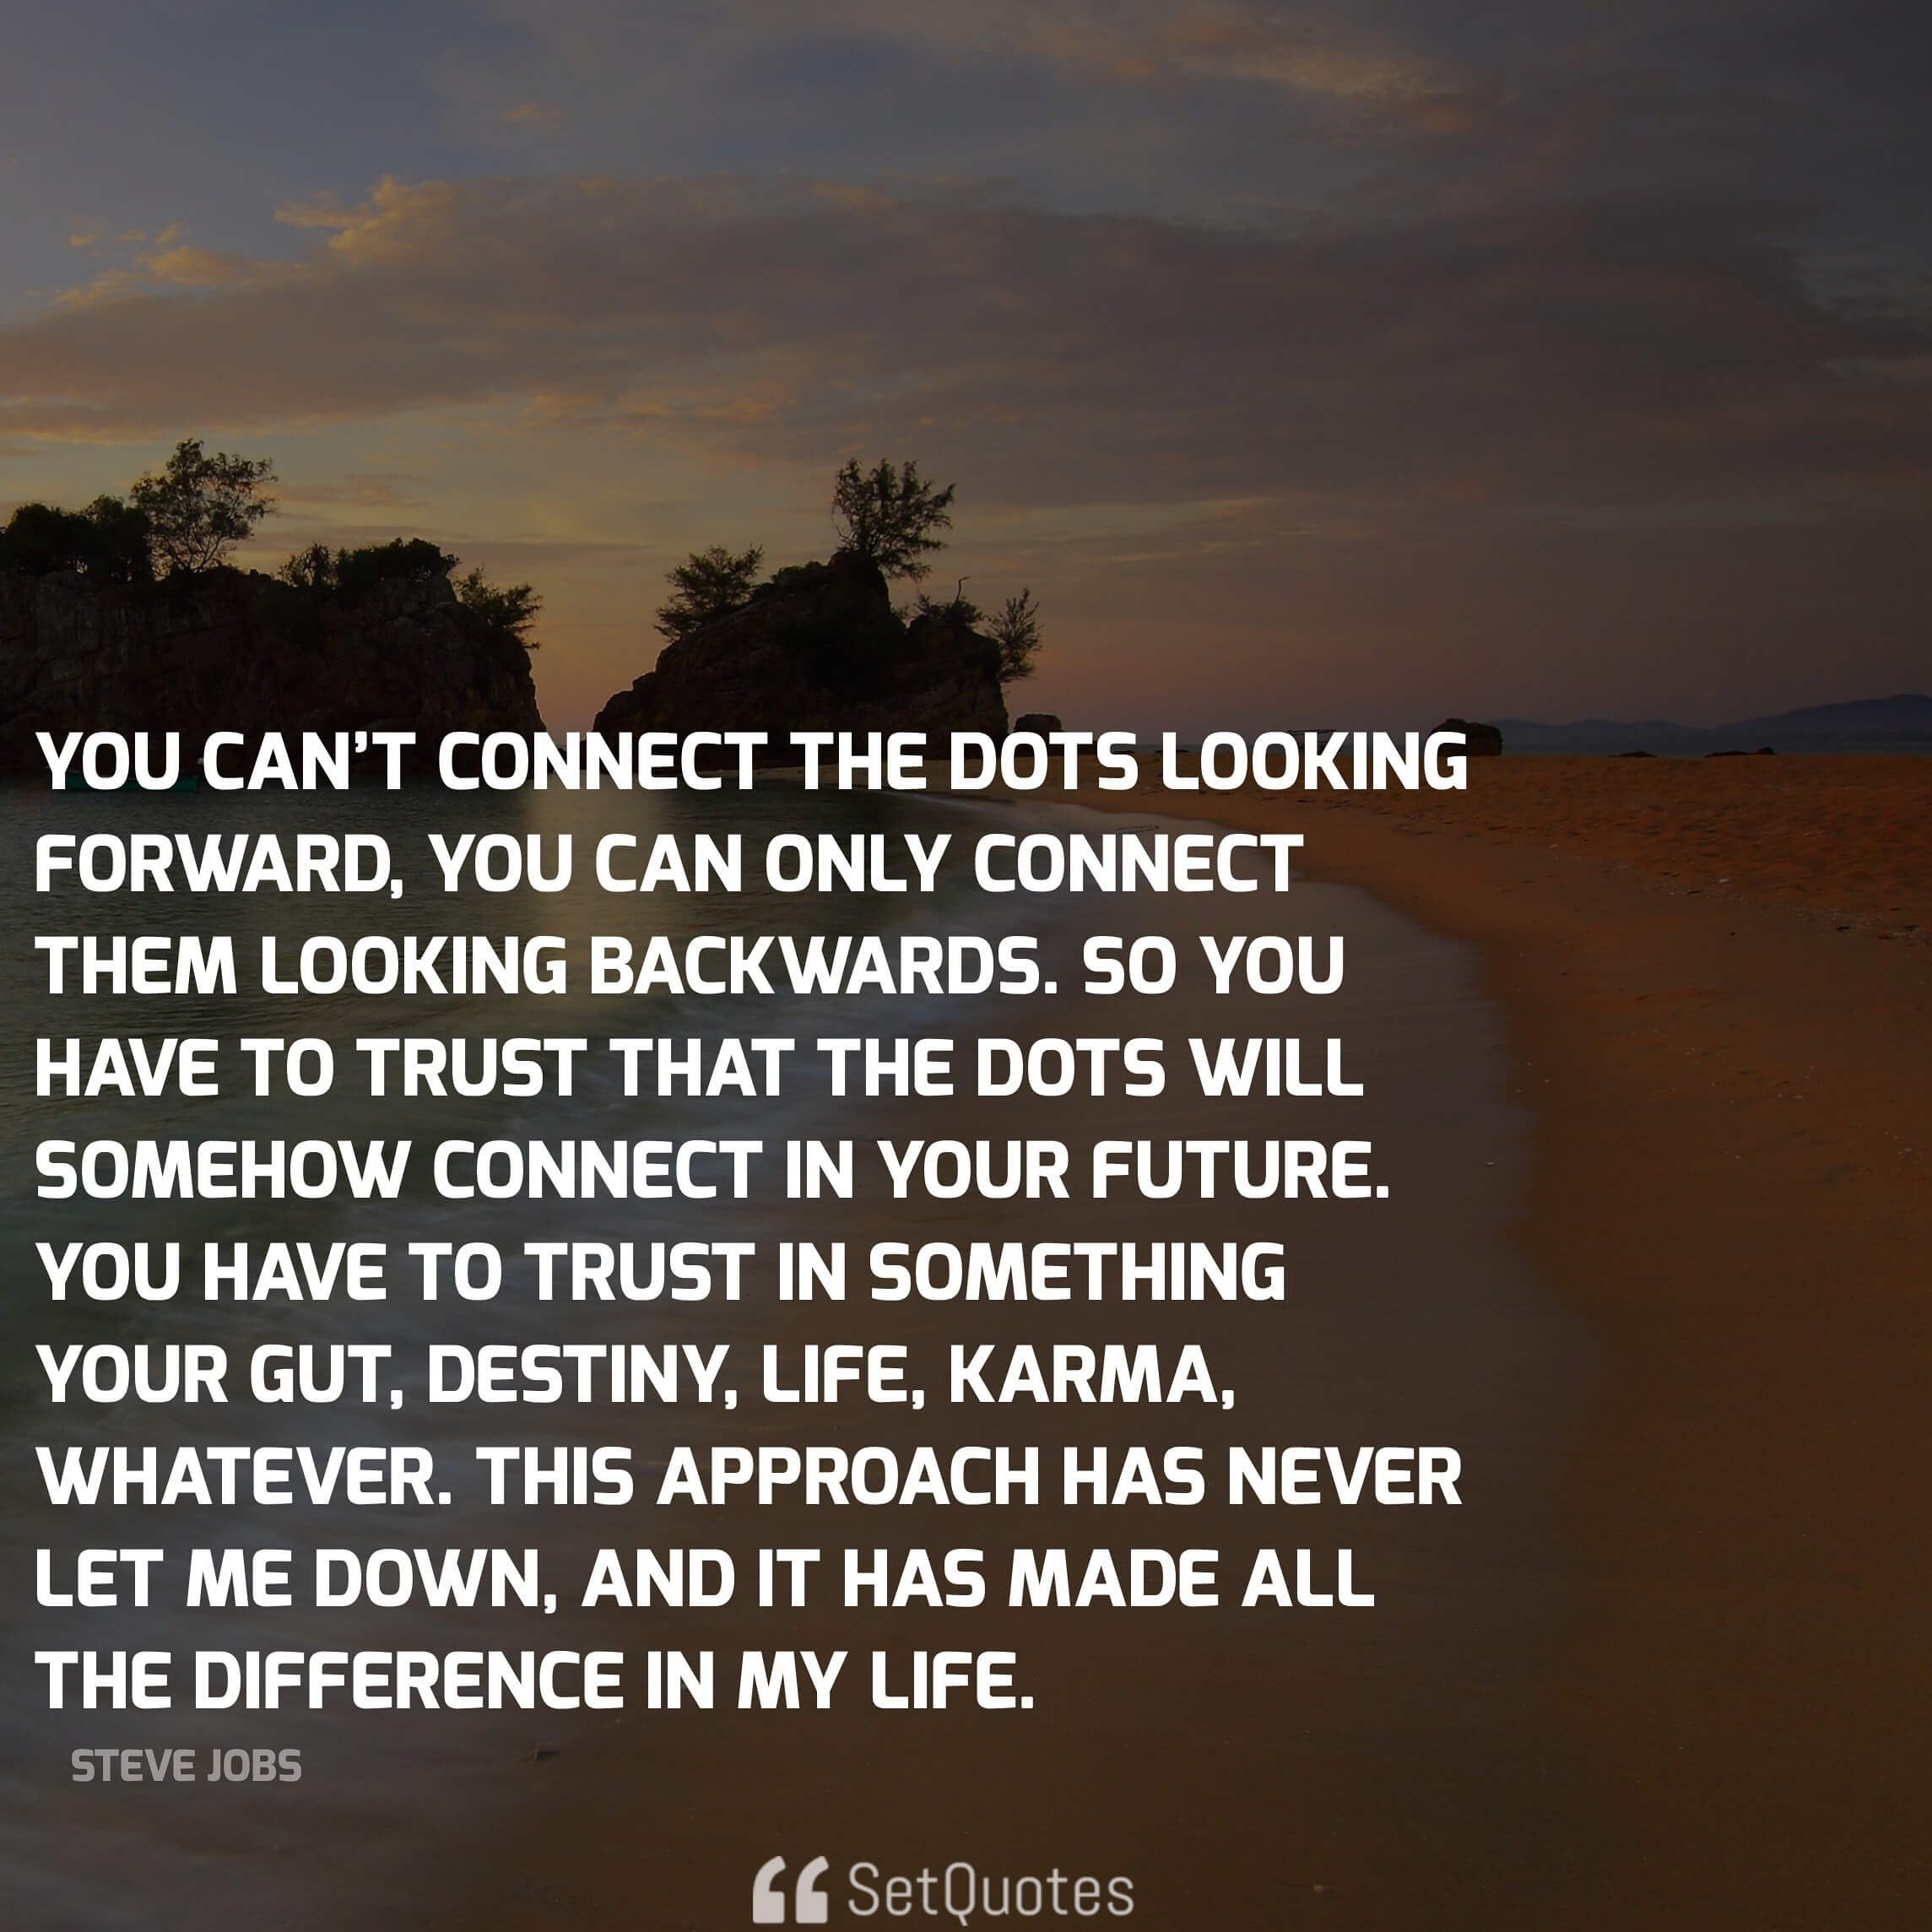 Looking Forward Quotes Steve Jobs Quotes That Can Change Your Life And Way You Think.